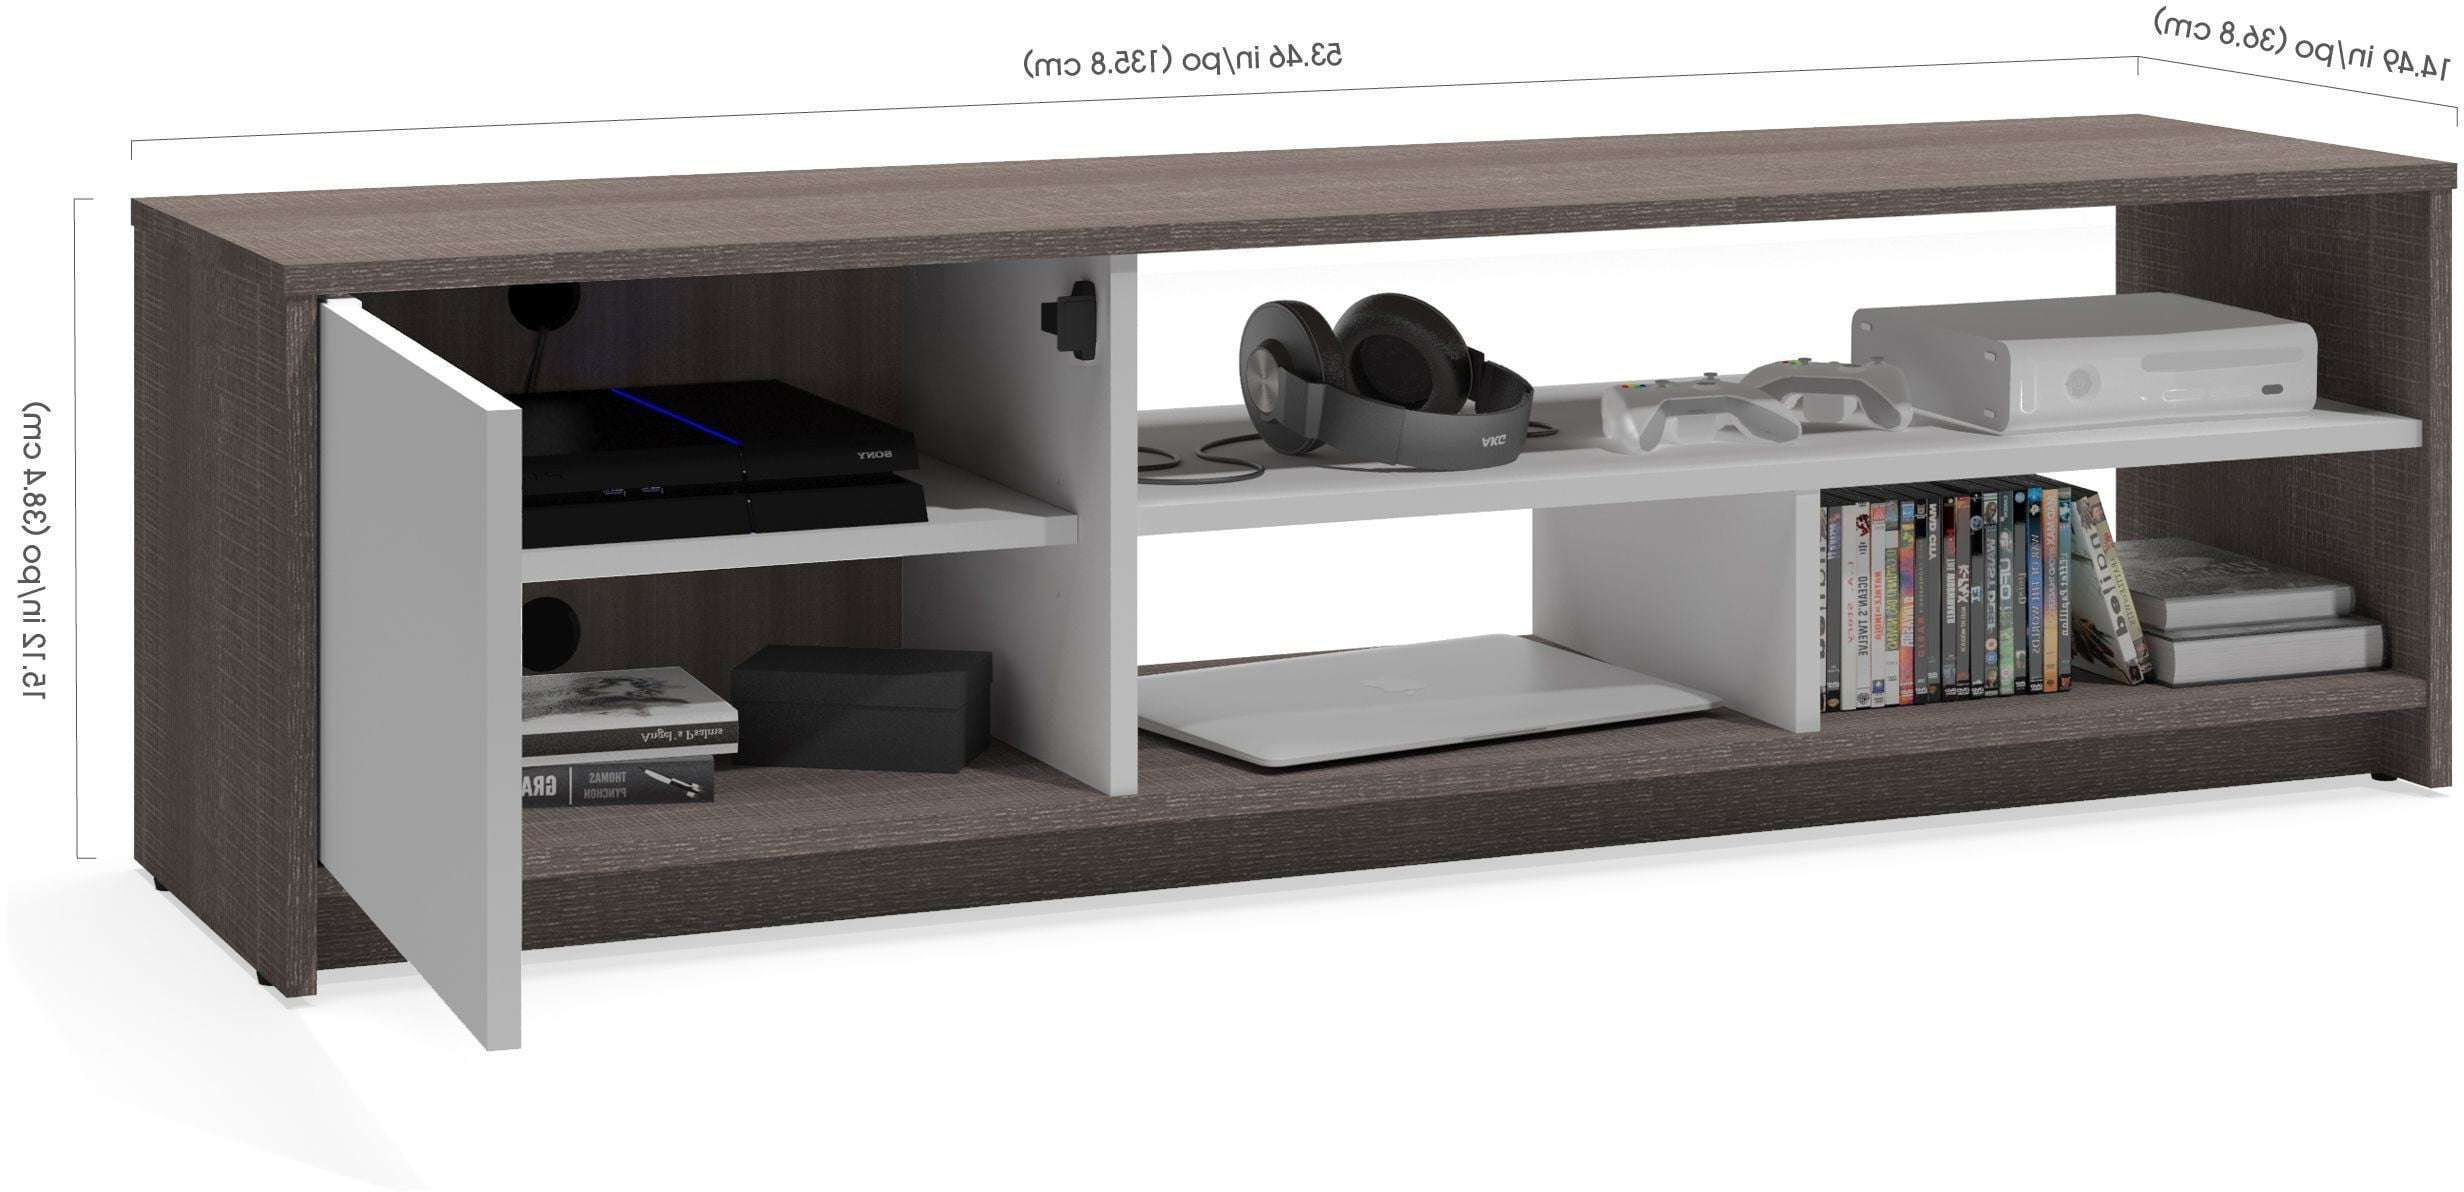 Tv Stands With Matching Bookcases With Regard To Preferred Best Tv Stand And Coffee Table Set Matching Rolling Ikea Wall (View 11 of 20)